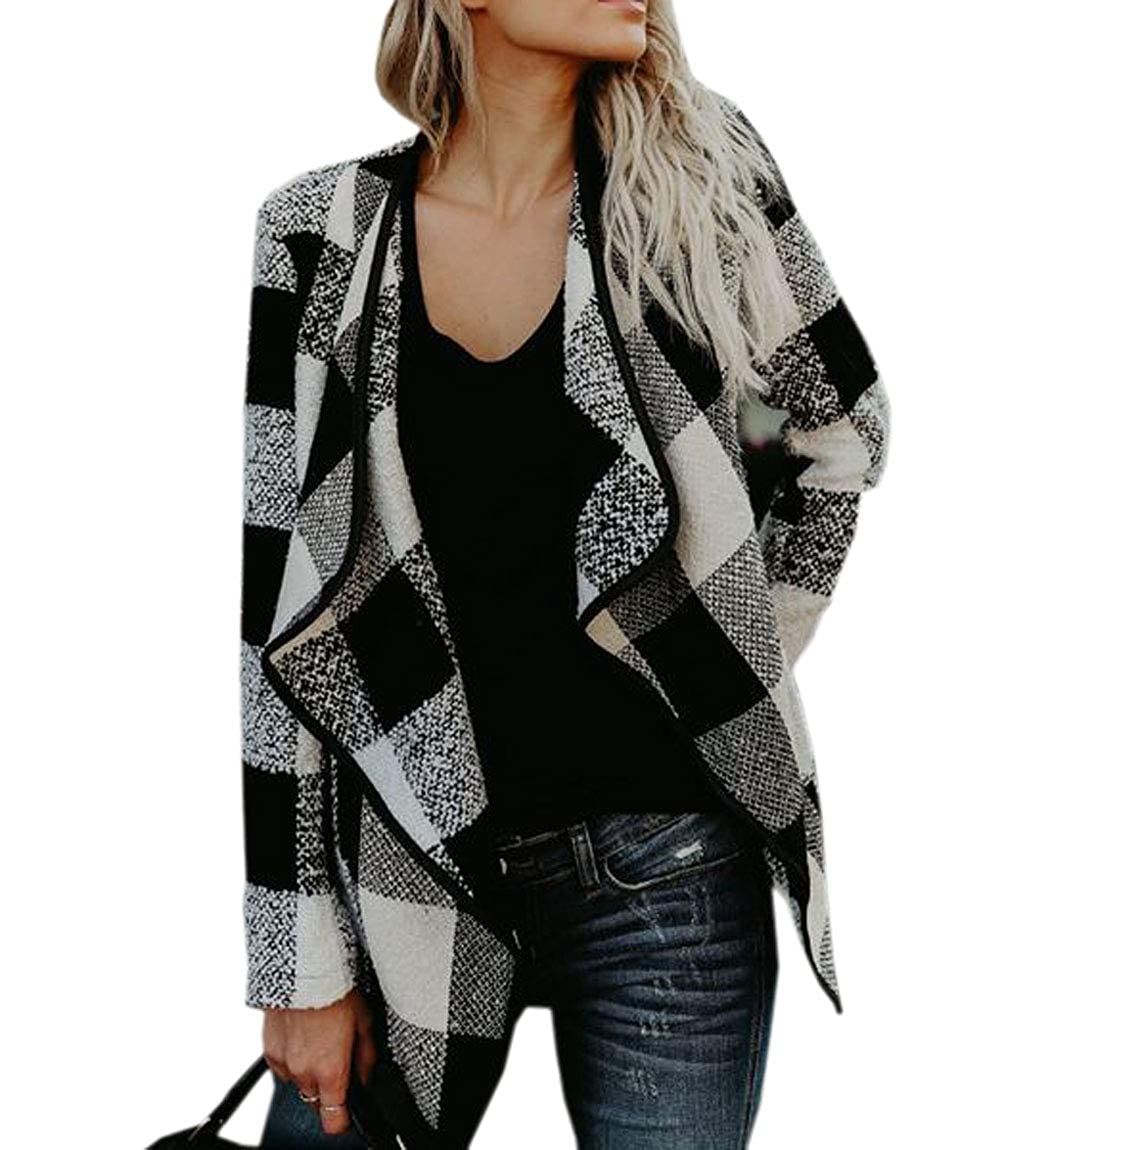 Black YueLian Women's Short Plaid Jacket Spring Long Sleeve Open Front Outfits